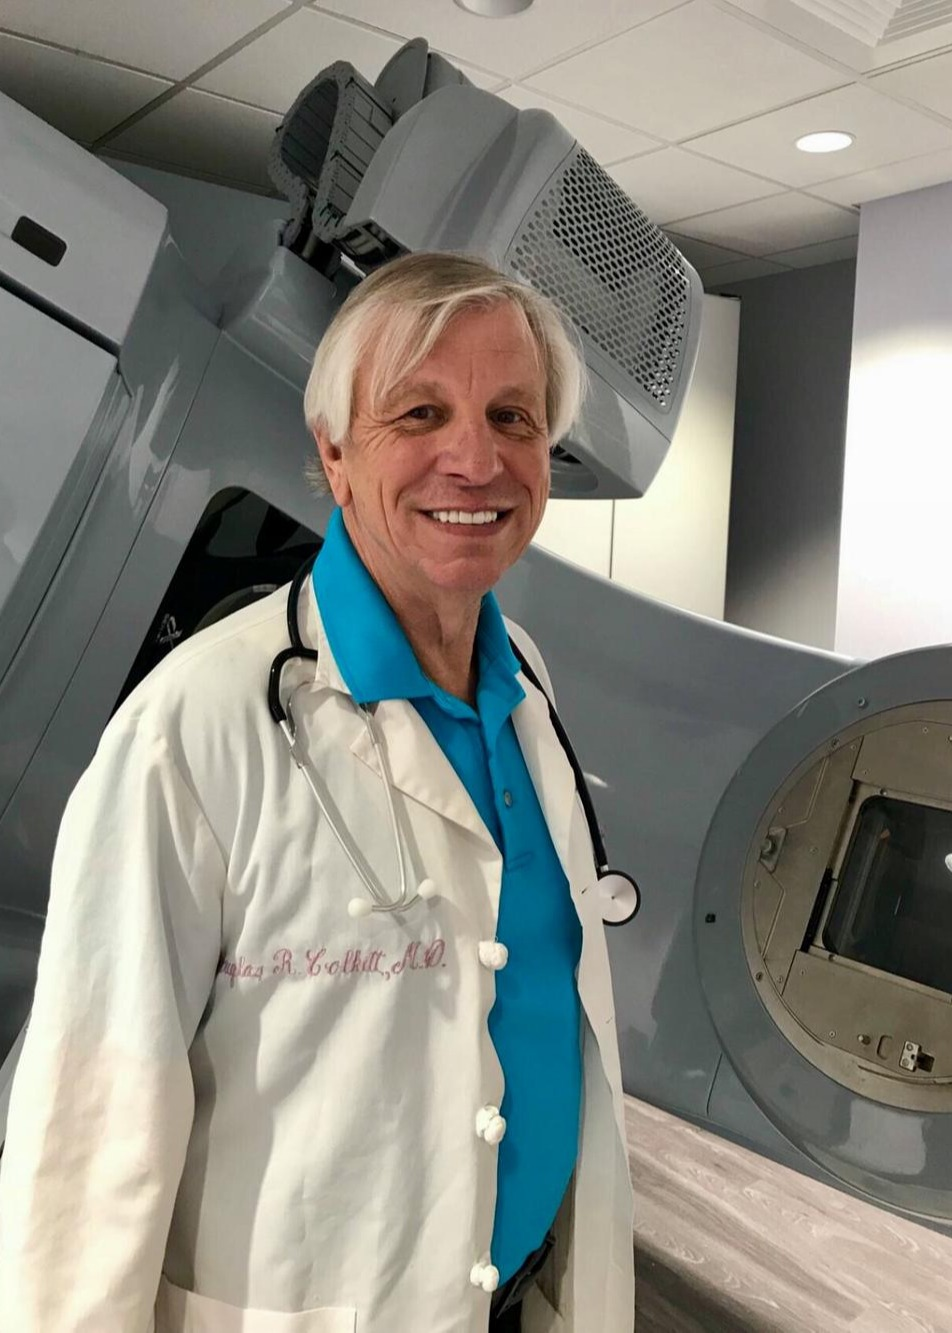 Dr. Douglas Colkitt, MD Photo